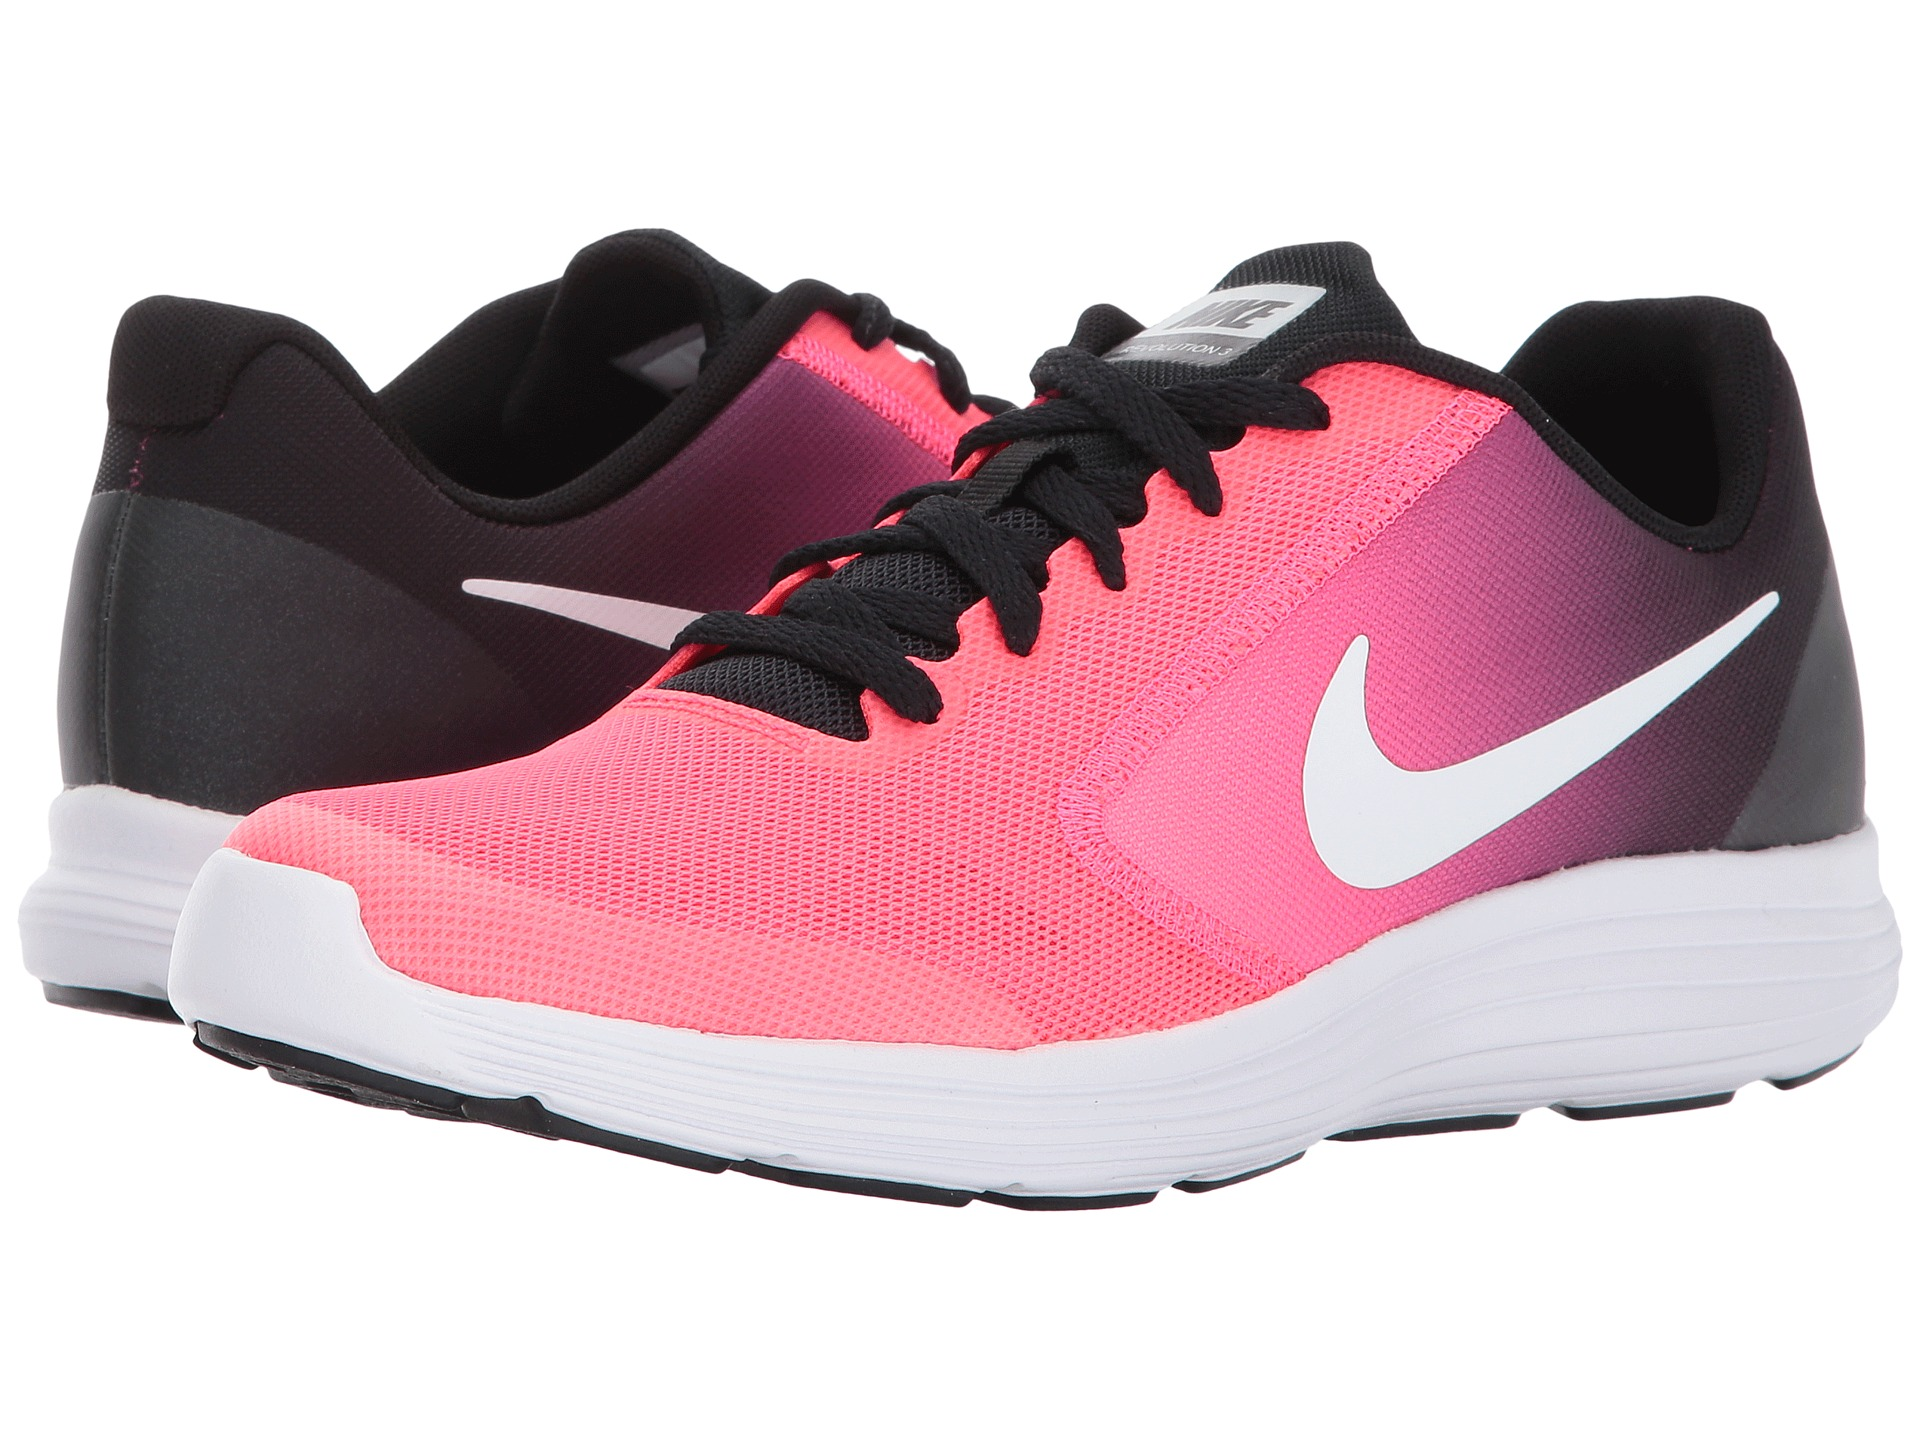 Nike Shoes Pink And Black Reveloution